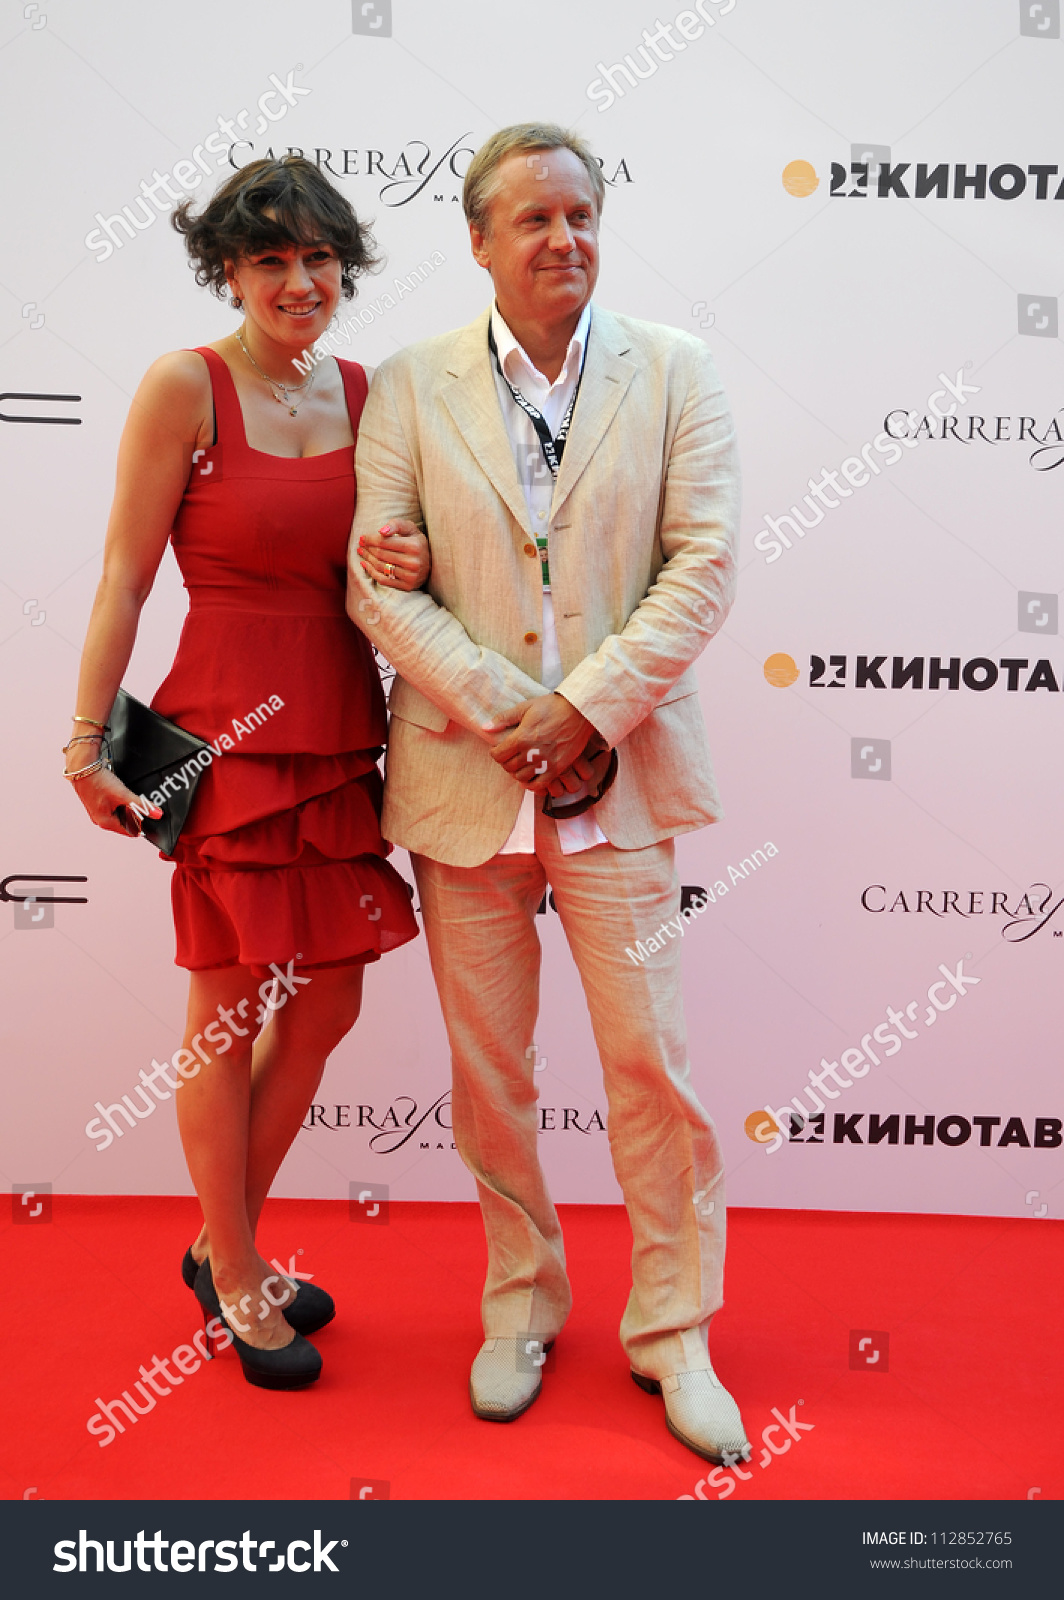 Dmitry Dyuzhev: filmography. The personal life of the actor